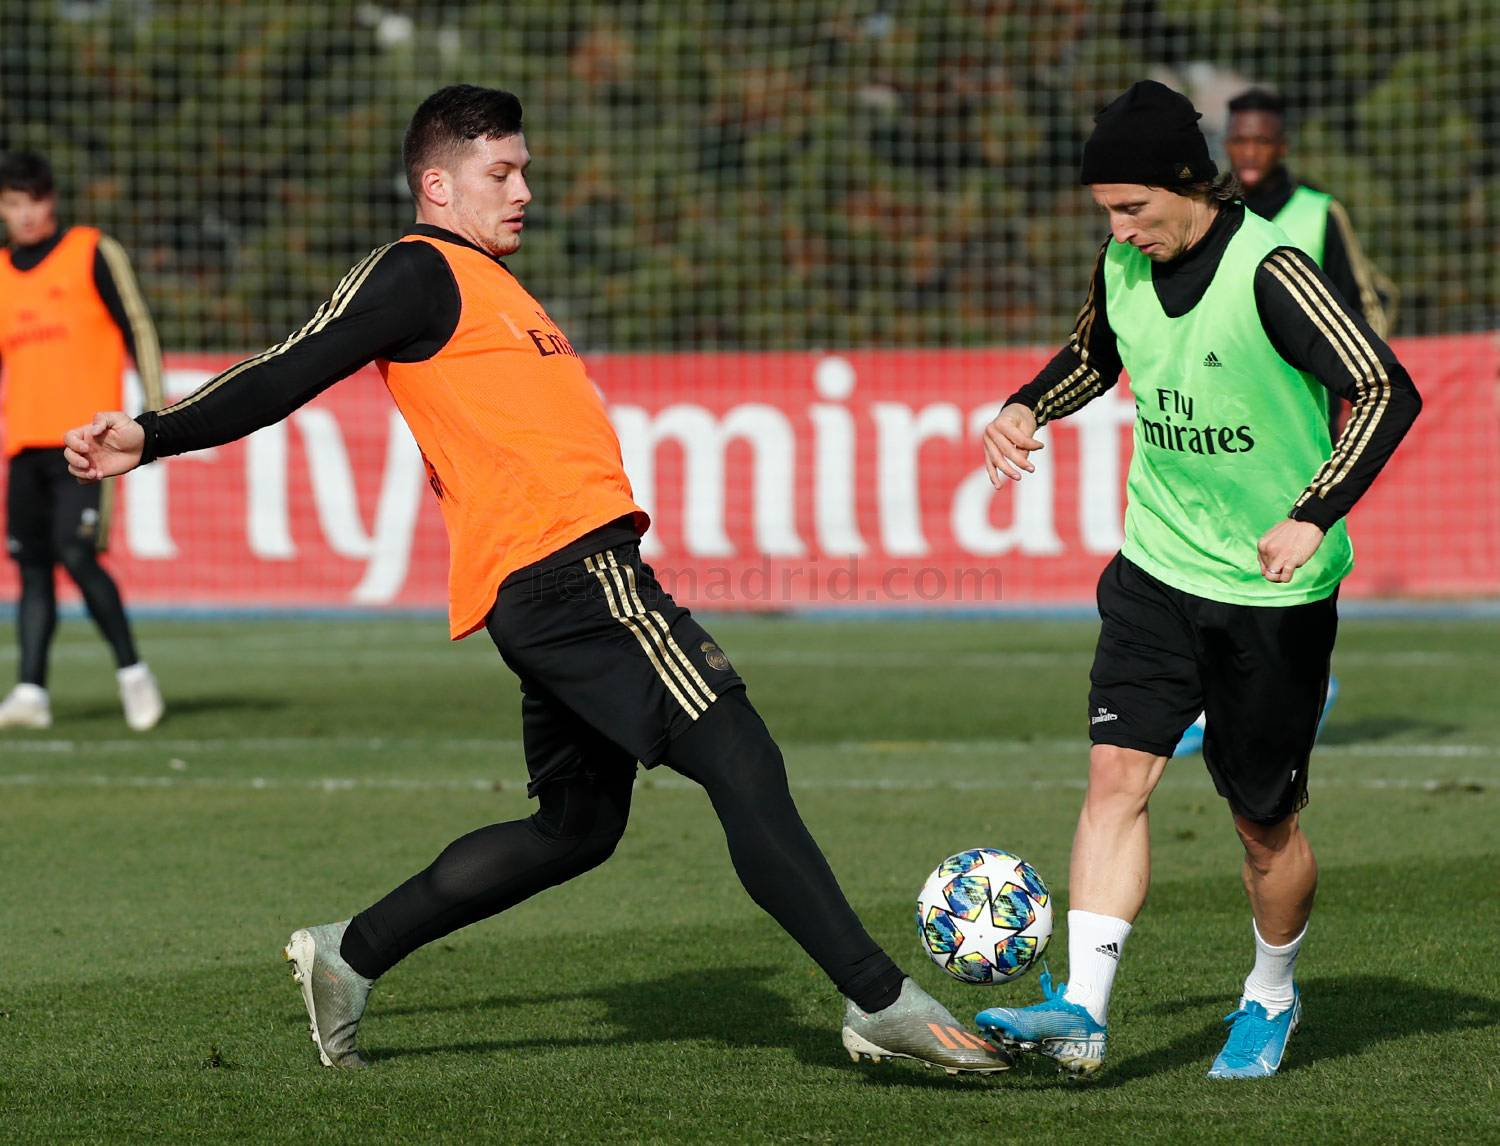 Real Madrid - Entrenamiento del Real Madrid  - 09-12-2019